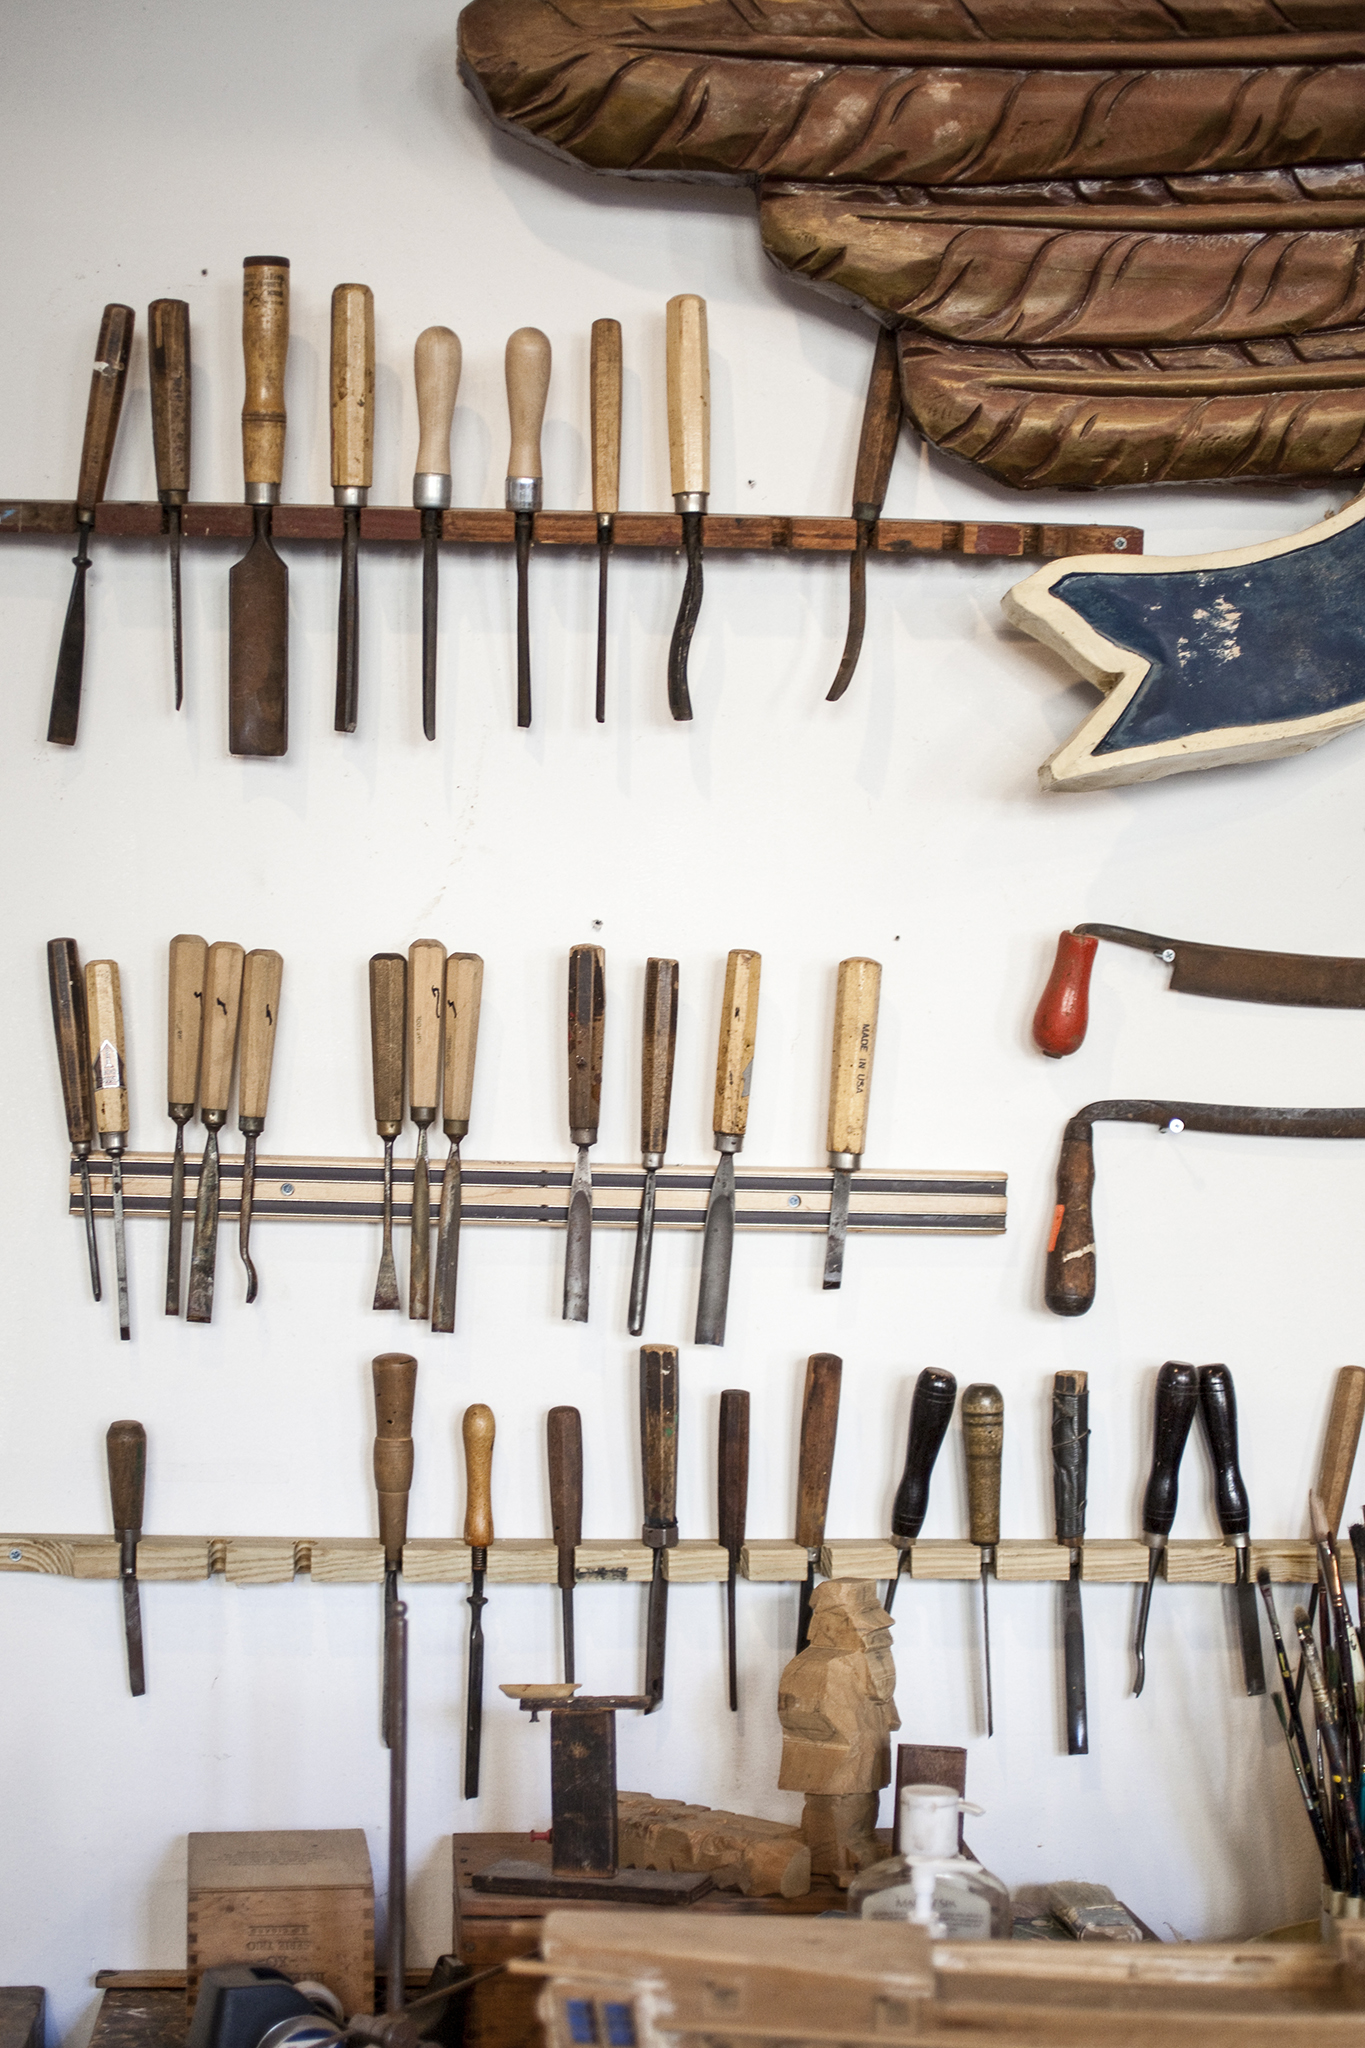 South Street Seaport Artisan's Row: Bowne Stationers & Seaport Woodcarvers